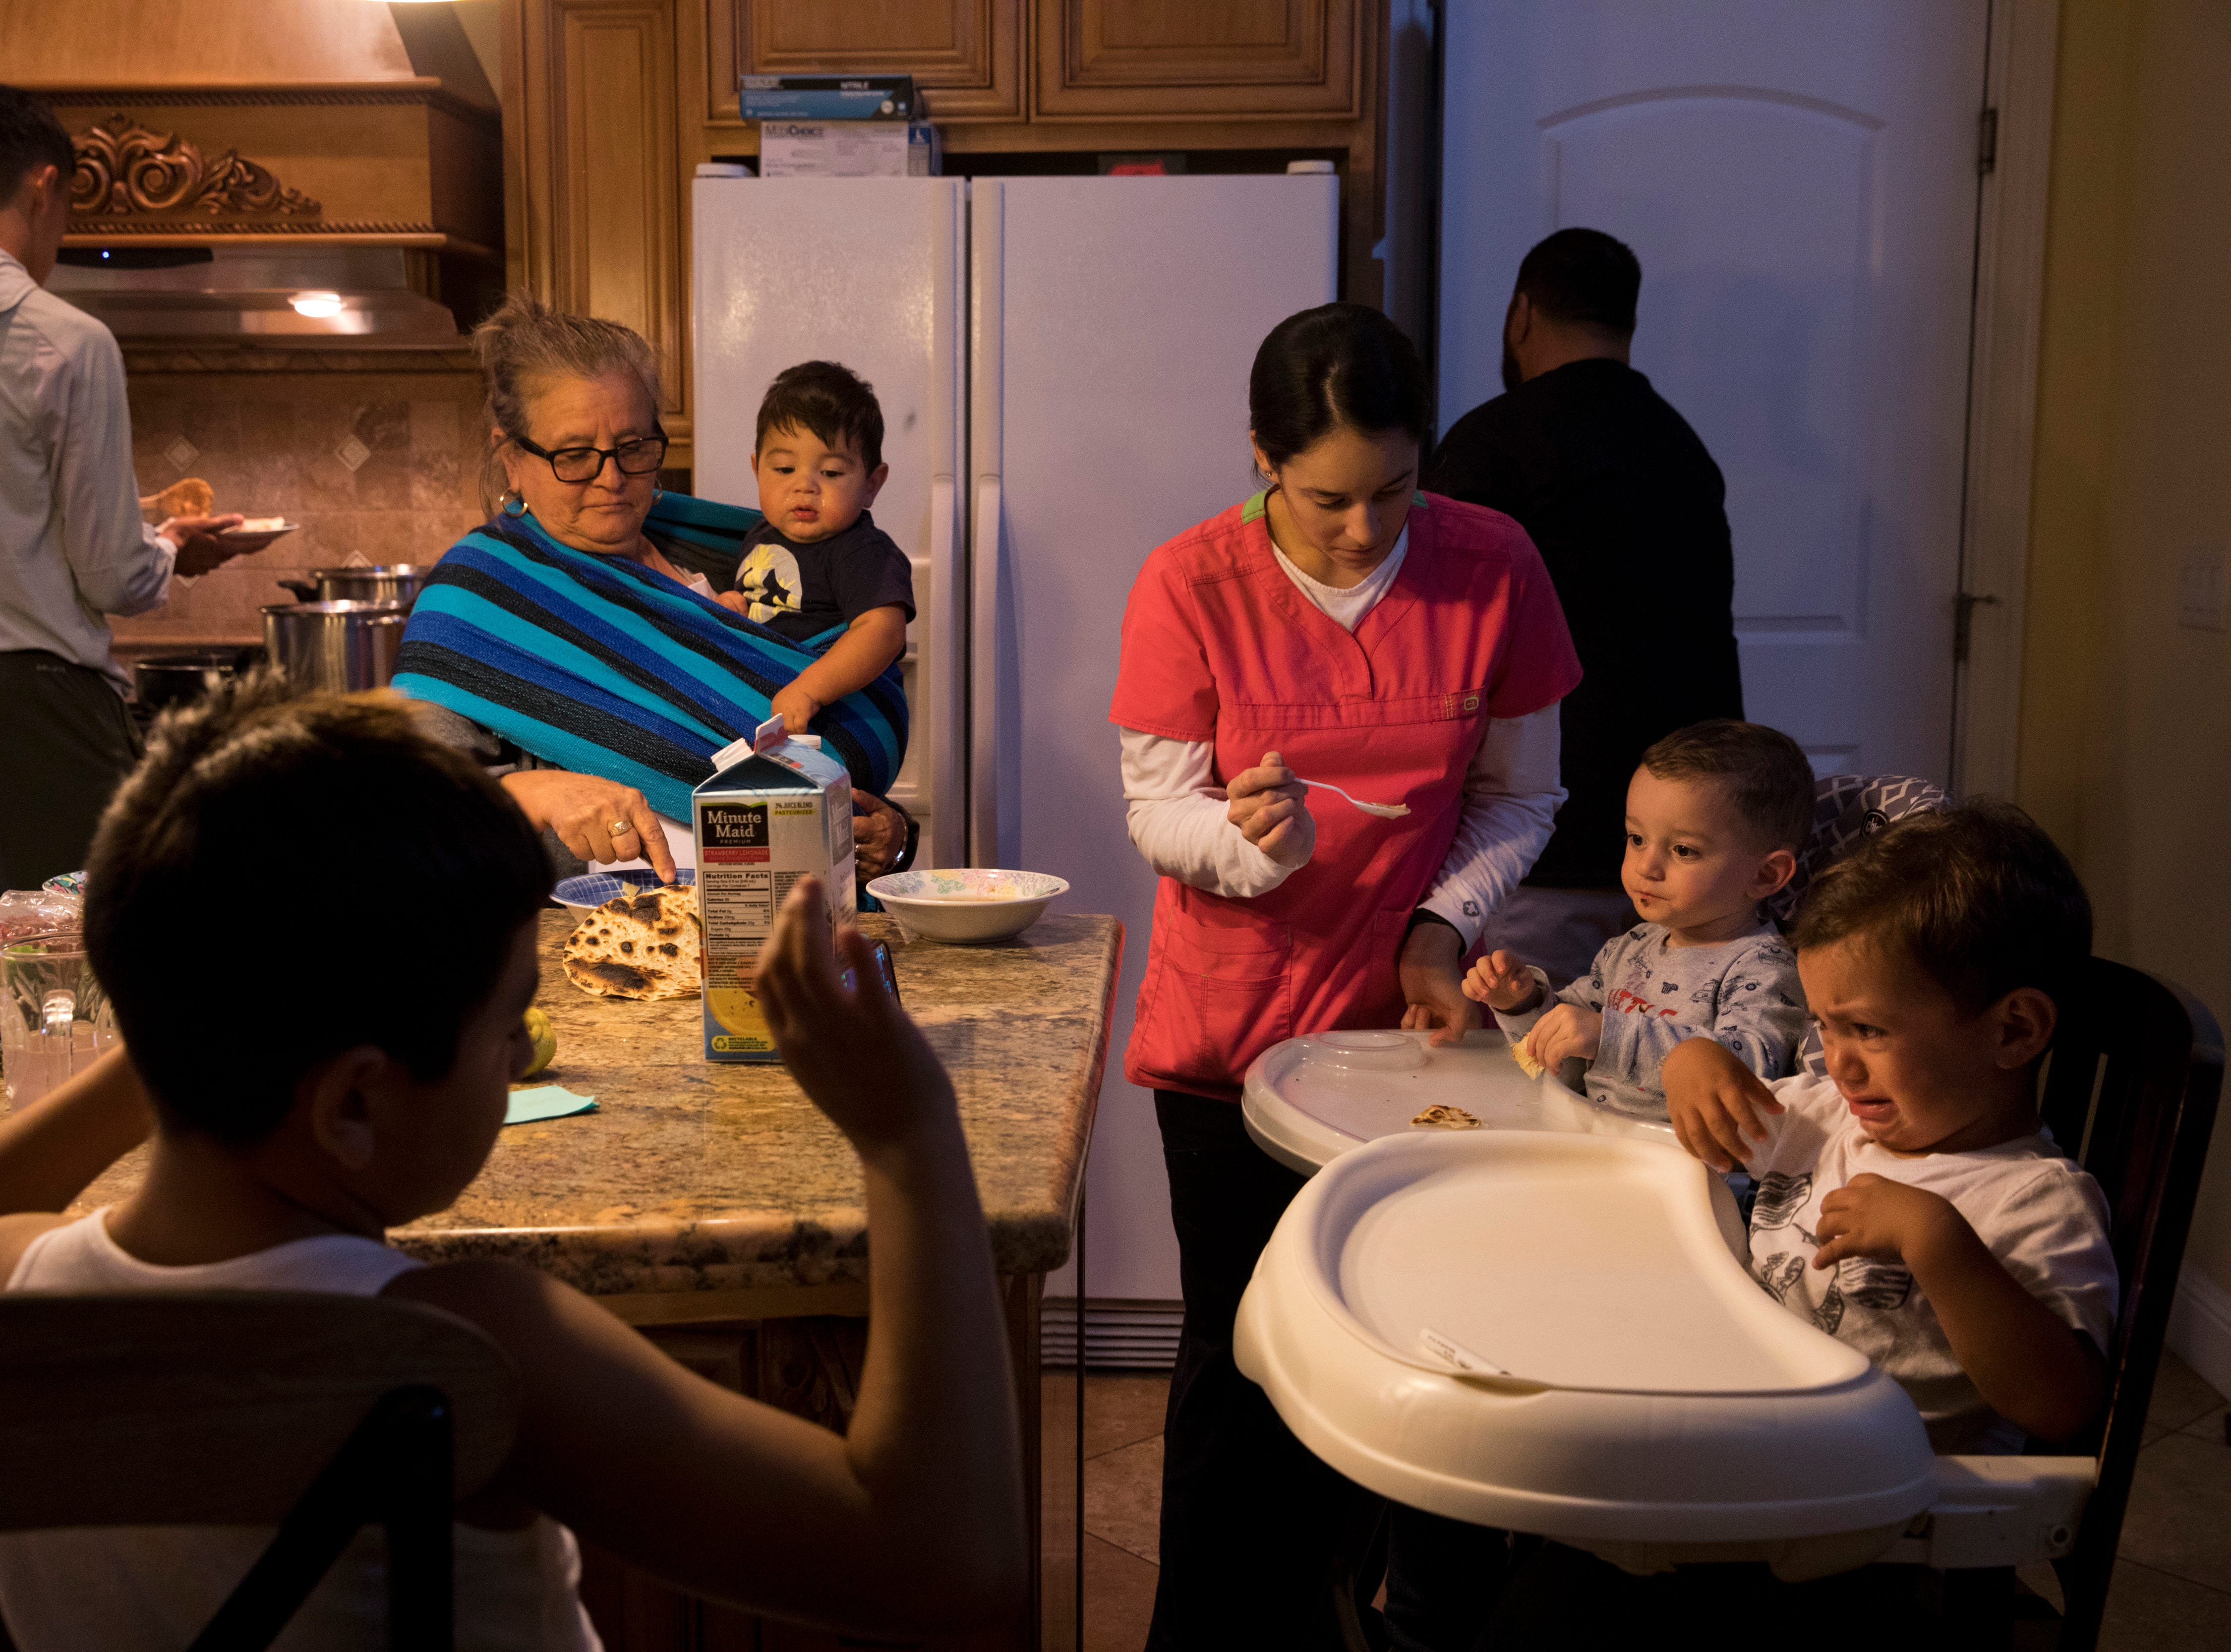 In this Thursday, Sept. 6, 2018, photo, Lilia Coyt, center left, and Coyt's daughter-in-law, Araceli Nunez, feed babies in their four-bedroom home, where three generations and 15 members of the family are jammed into, in Salinas, Calif. Few cities exemplify California's housing crisis better than Salinas, an hour's drive from Silicon Valley and surrounded by farm fields. It's one of America's most unaffordable places to live, and many residents believe politicians lack a grip on the reality of the region's housing crisis. (AP Photo/Jae C. Hong)